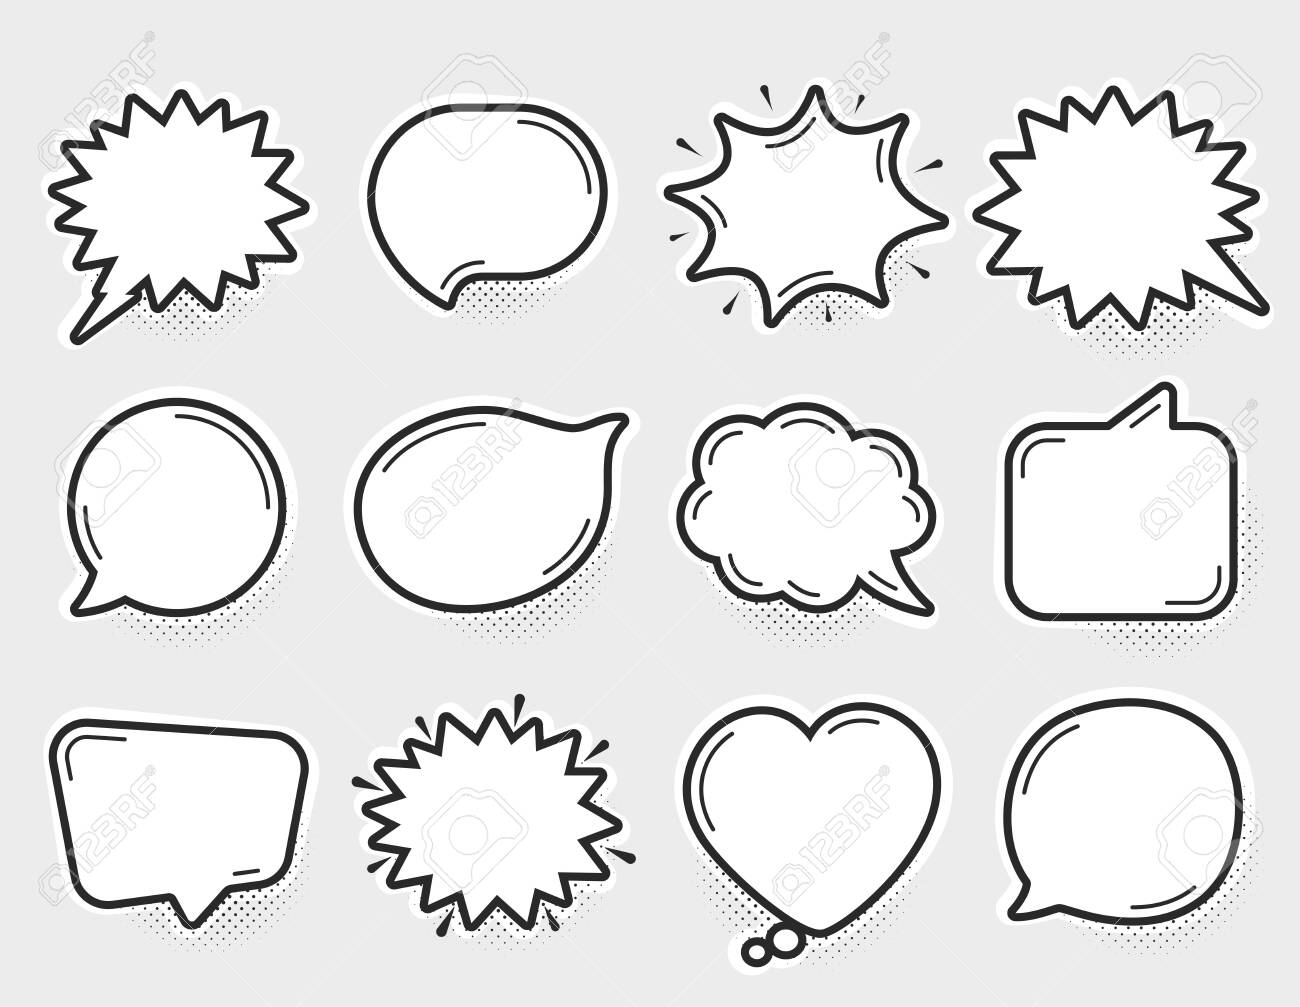 Comic speech bubbles vector. Thinking and speaking clouds. Retro bubbles shapes. Balloons with halftone shadow. Vintage pop art style design. Comic graphic elements. Cartoon badge. Vector balloons - 132763993